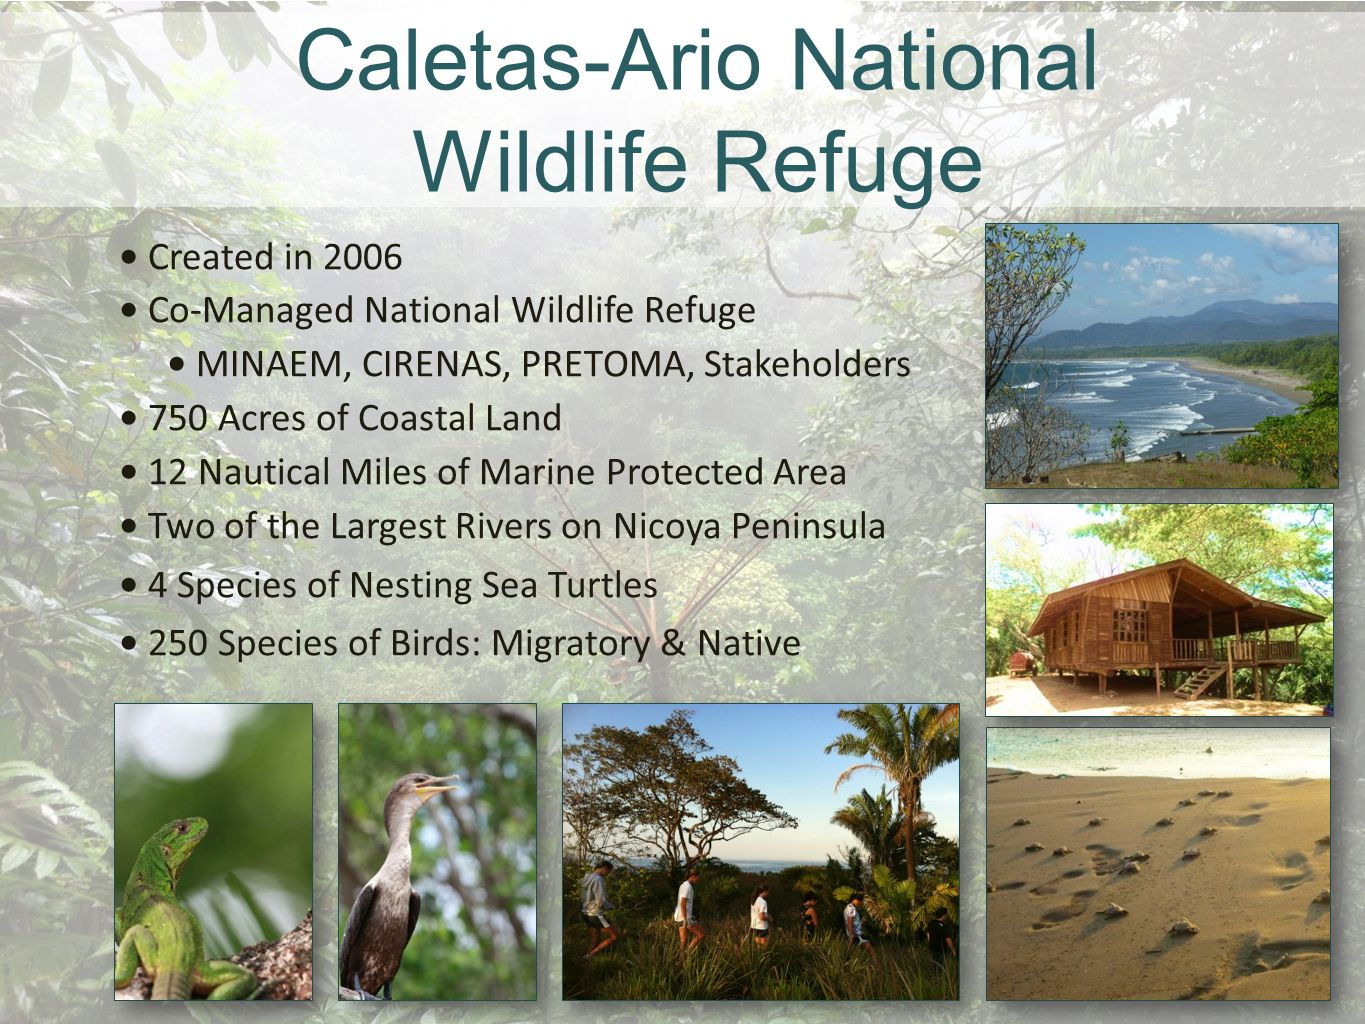 Caletas-Ario National Wildlife Refuge Created in 2006 Co-Managed National Wildlife Refuge MINAEM, CIRENAS, PRETOMA, Stakeholders 750 Acres of Coastal